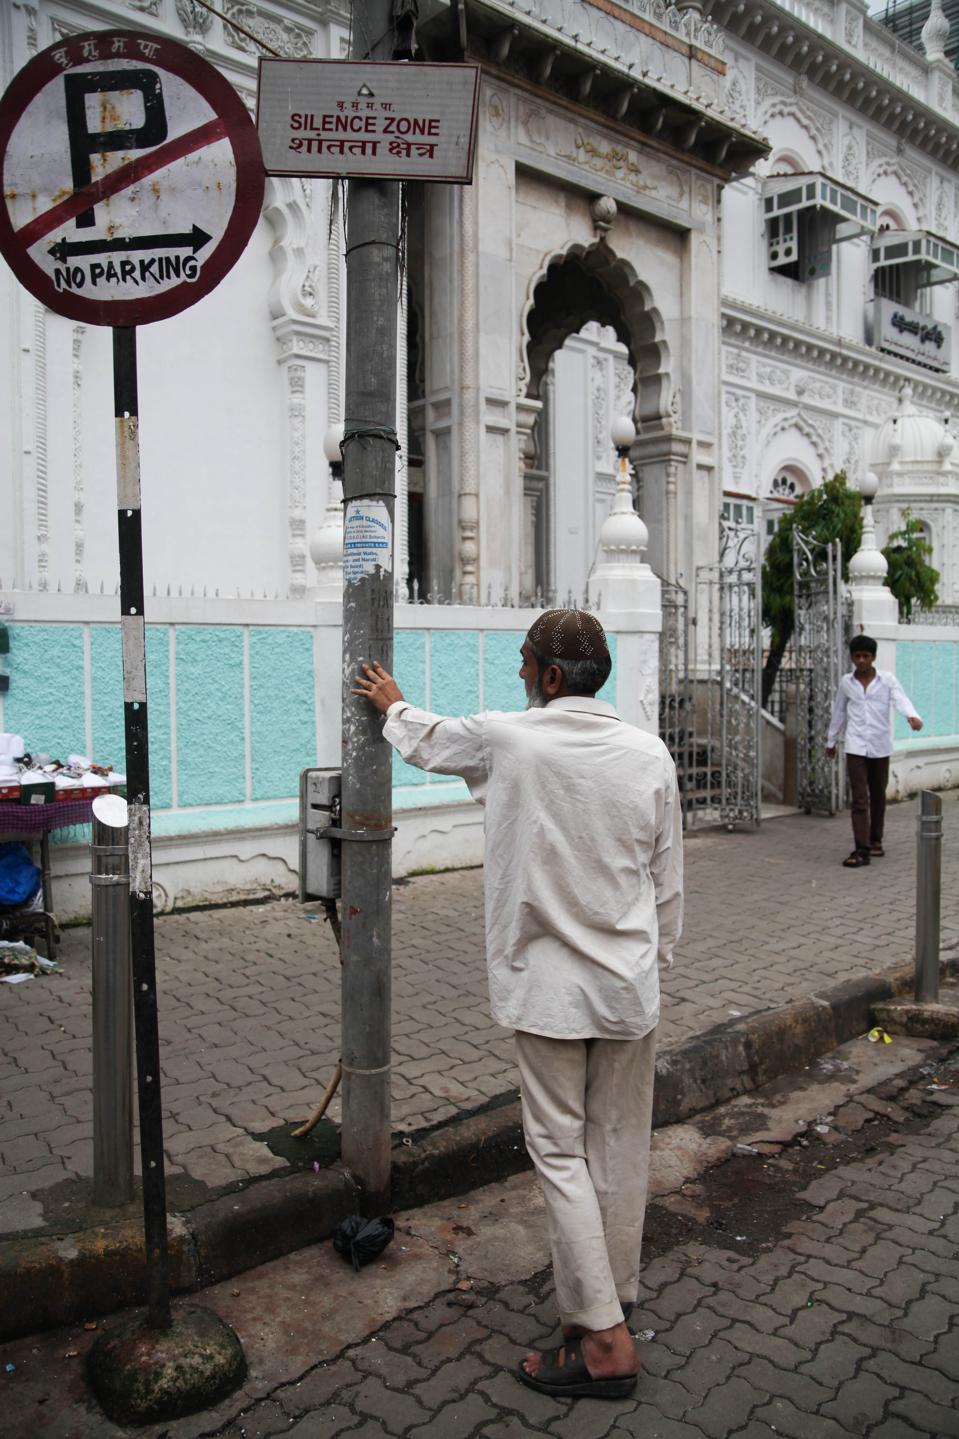 ″Silence zone″ and ″no parking″ signs, plus two men, outside a white mosque